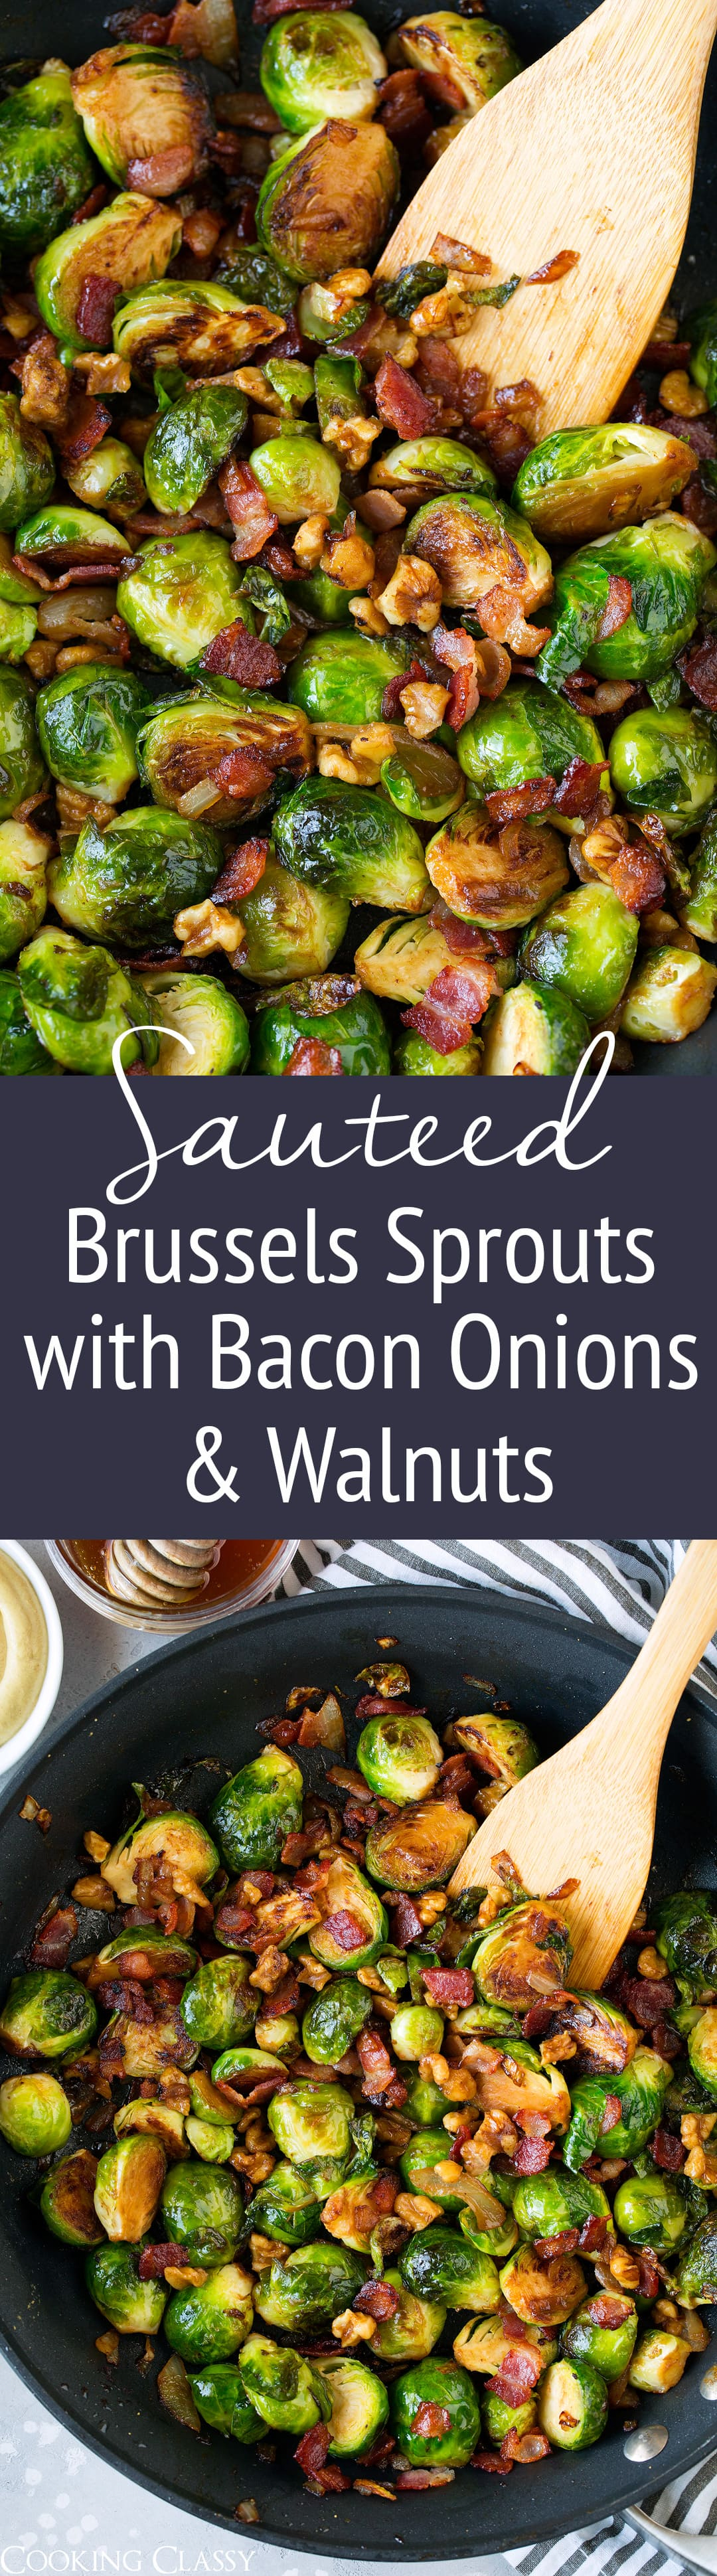 Sauteed Brussels Sprouts with Bacon Onions and Walnuts - These brussels sprouts will likely become a go-to side dish in your rotation! They're perfectly delicious and easy to make. Plus they have such a great flavor combination!